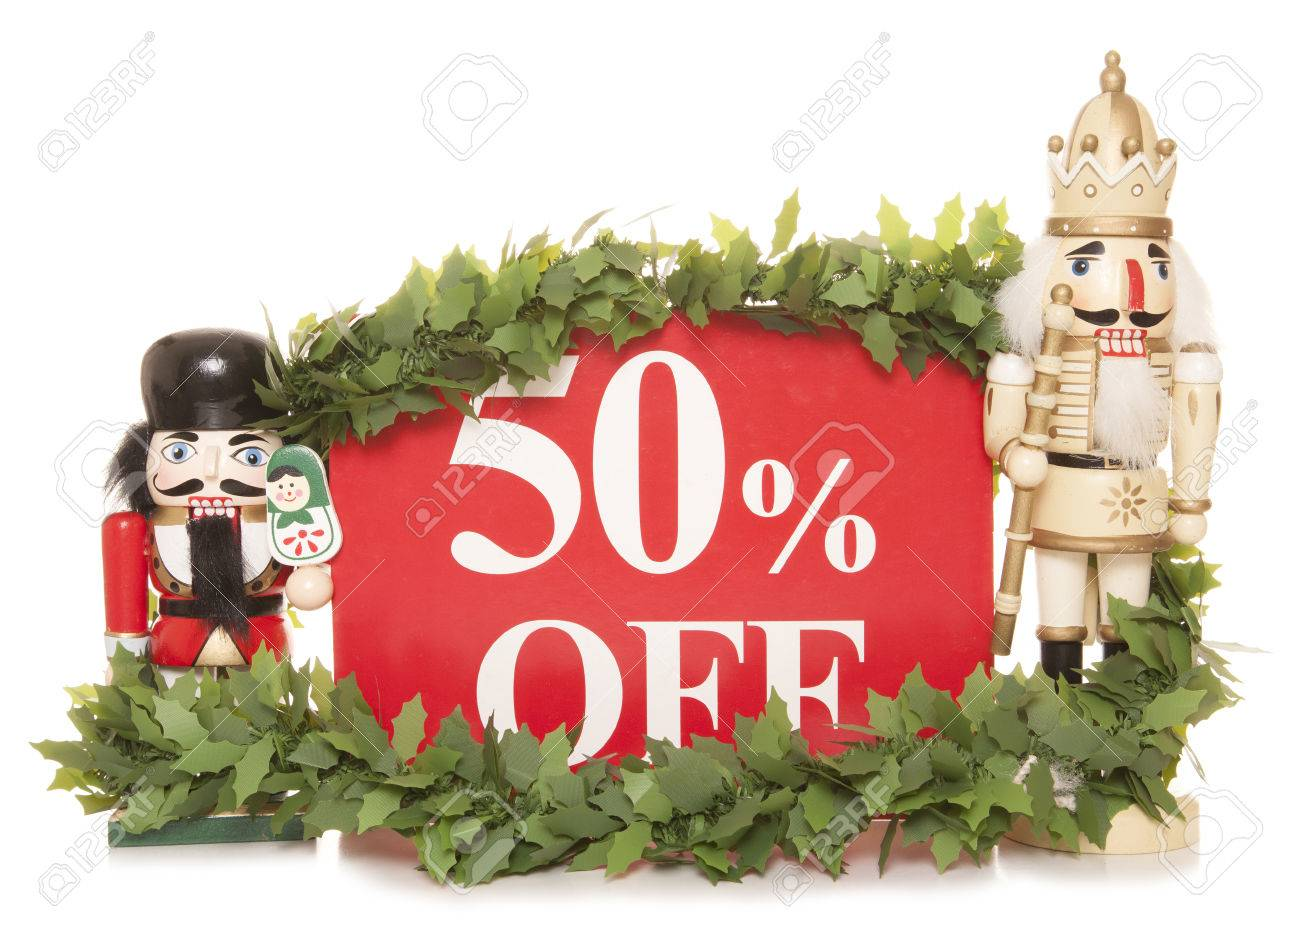 50 off christmas sale sign and nutcracker ornaments cutout stock